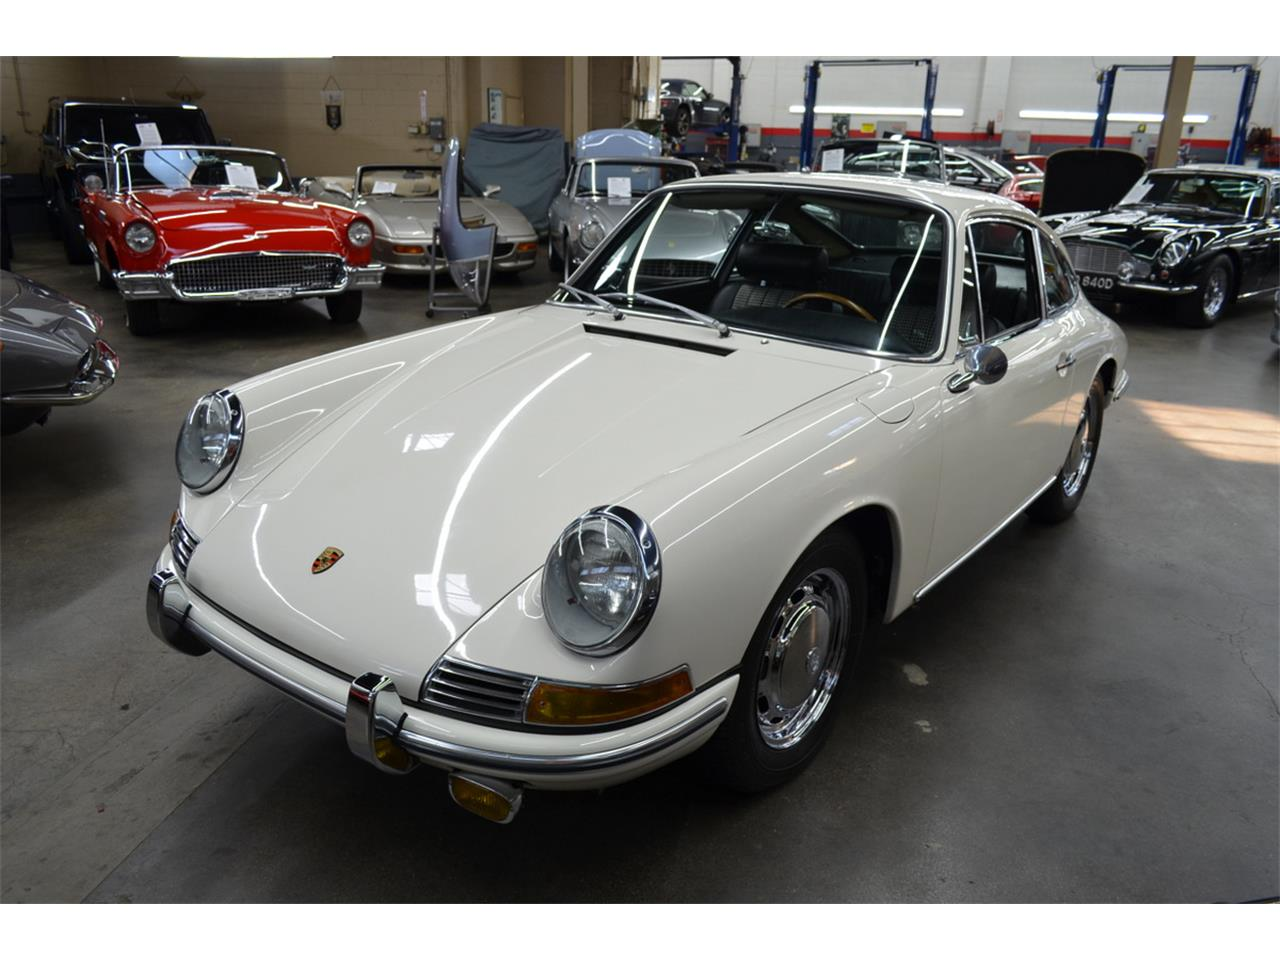 Large Picture of 1965 Porsche 911 located in Huntington Station New York Auction Vehicle Offered by Autosport Designs Inc - QQUH